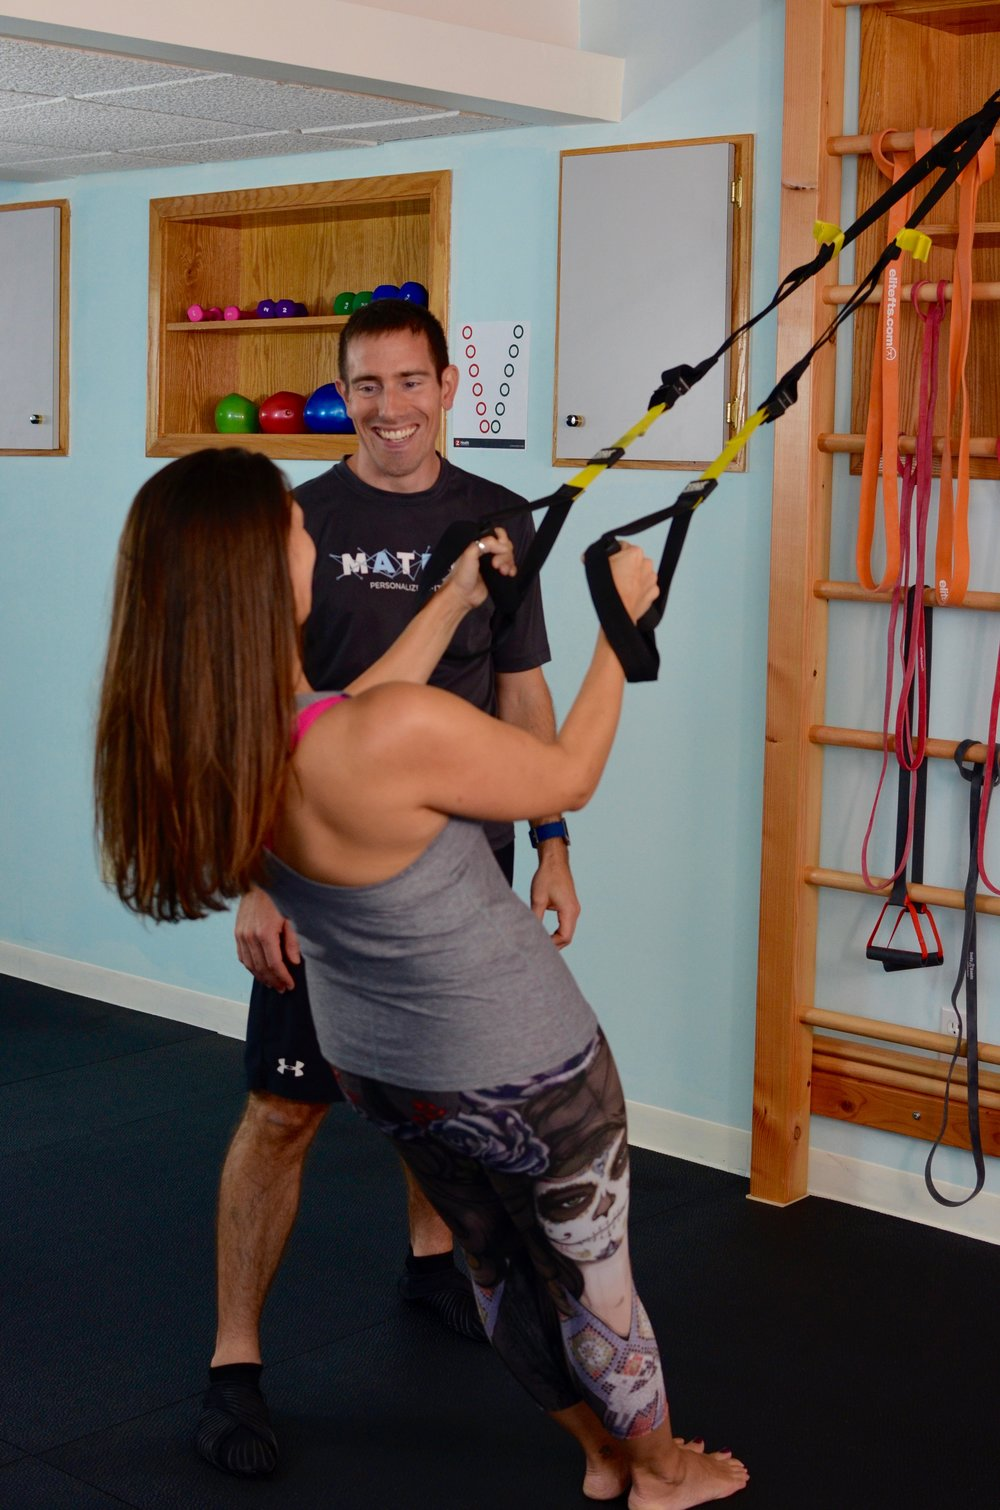 Matrix Personalized Fitness in East Greenwich, RI offers one-on-one personal training geared to help get you out of pain.